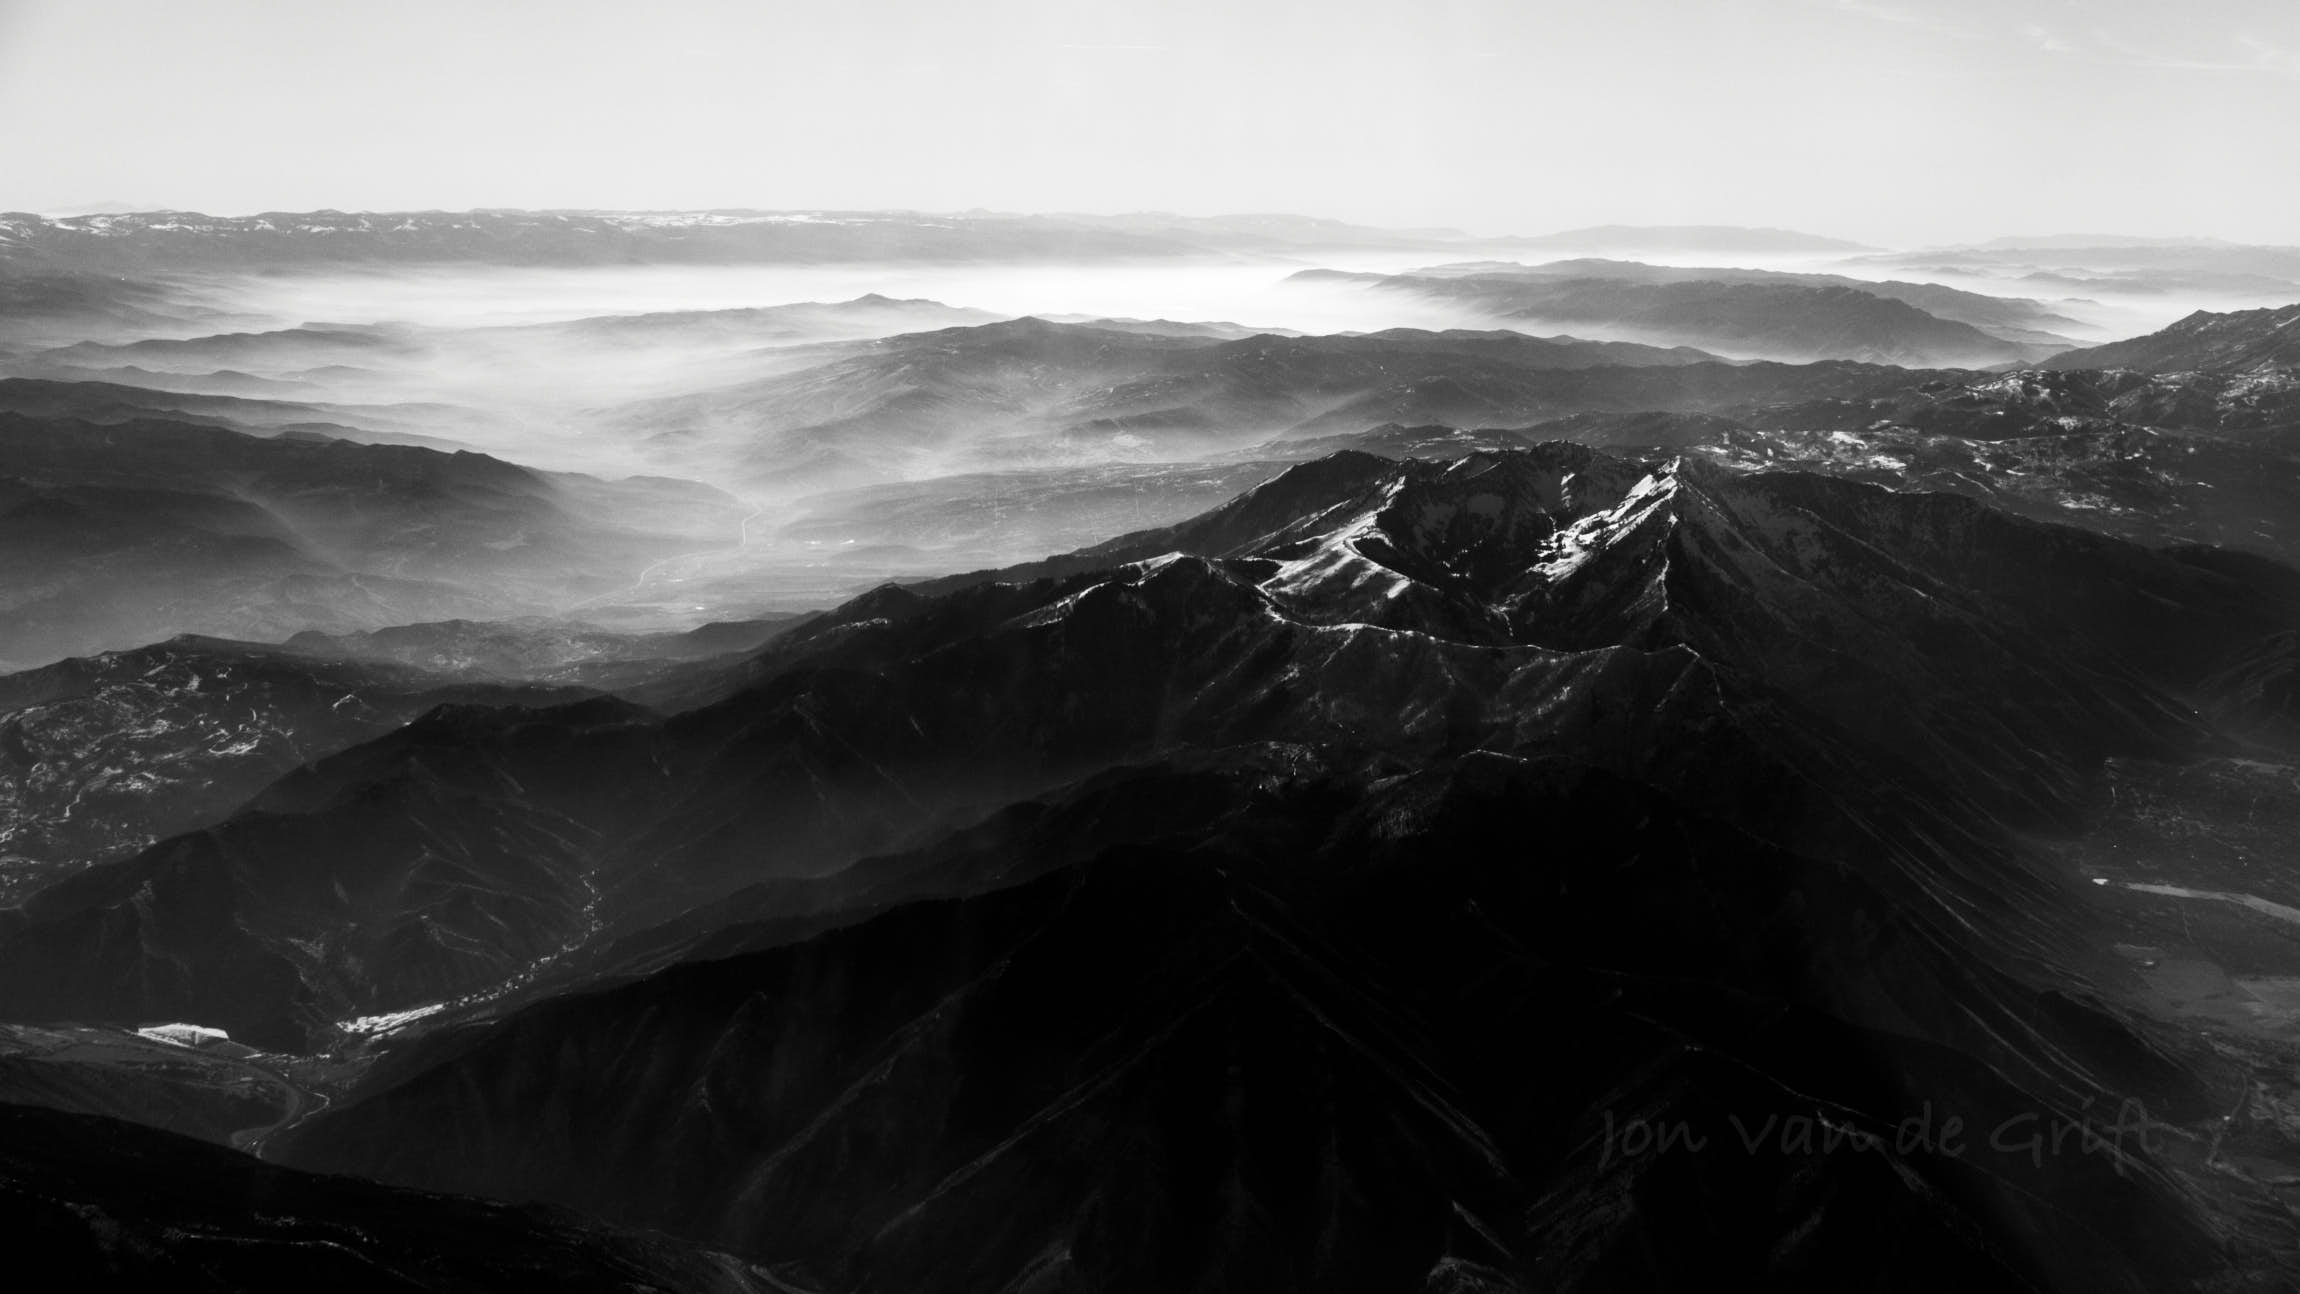 Black and white aerial photograph of mountain ranges with snow.